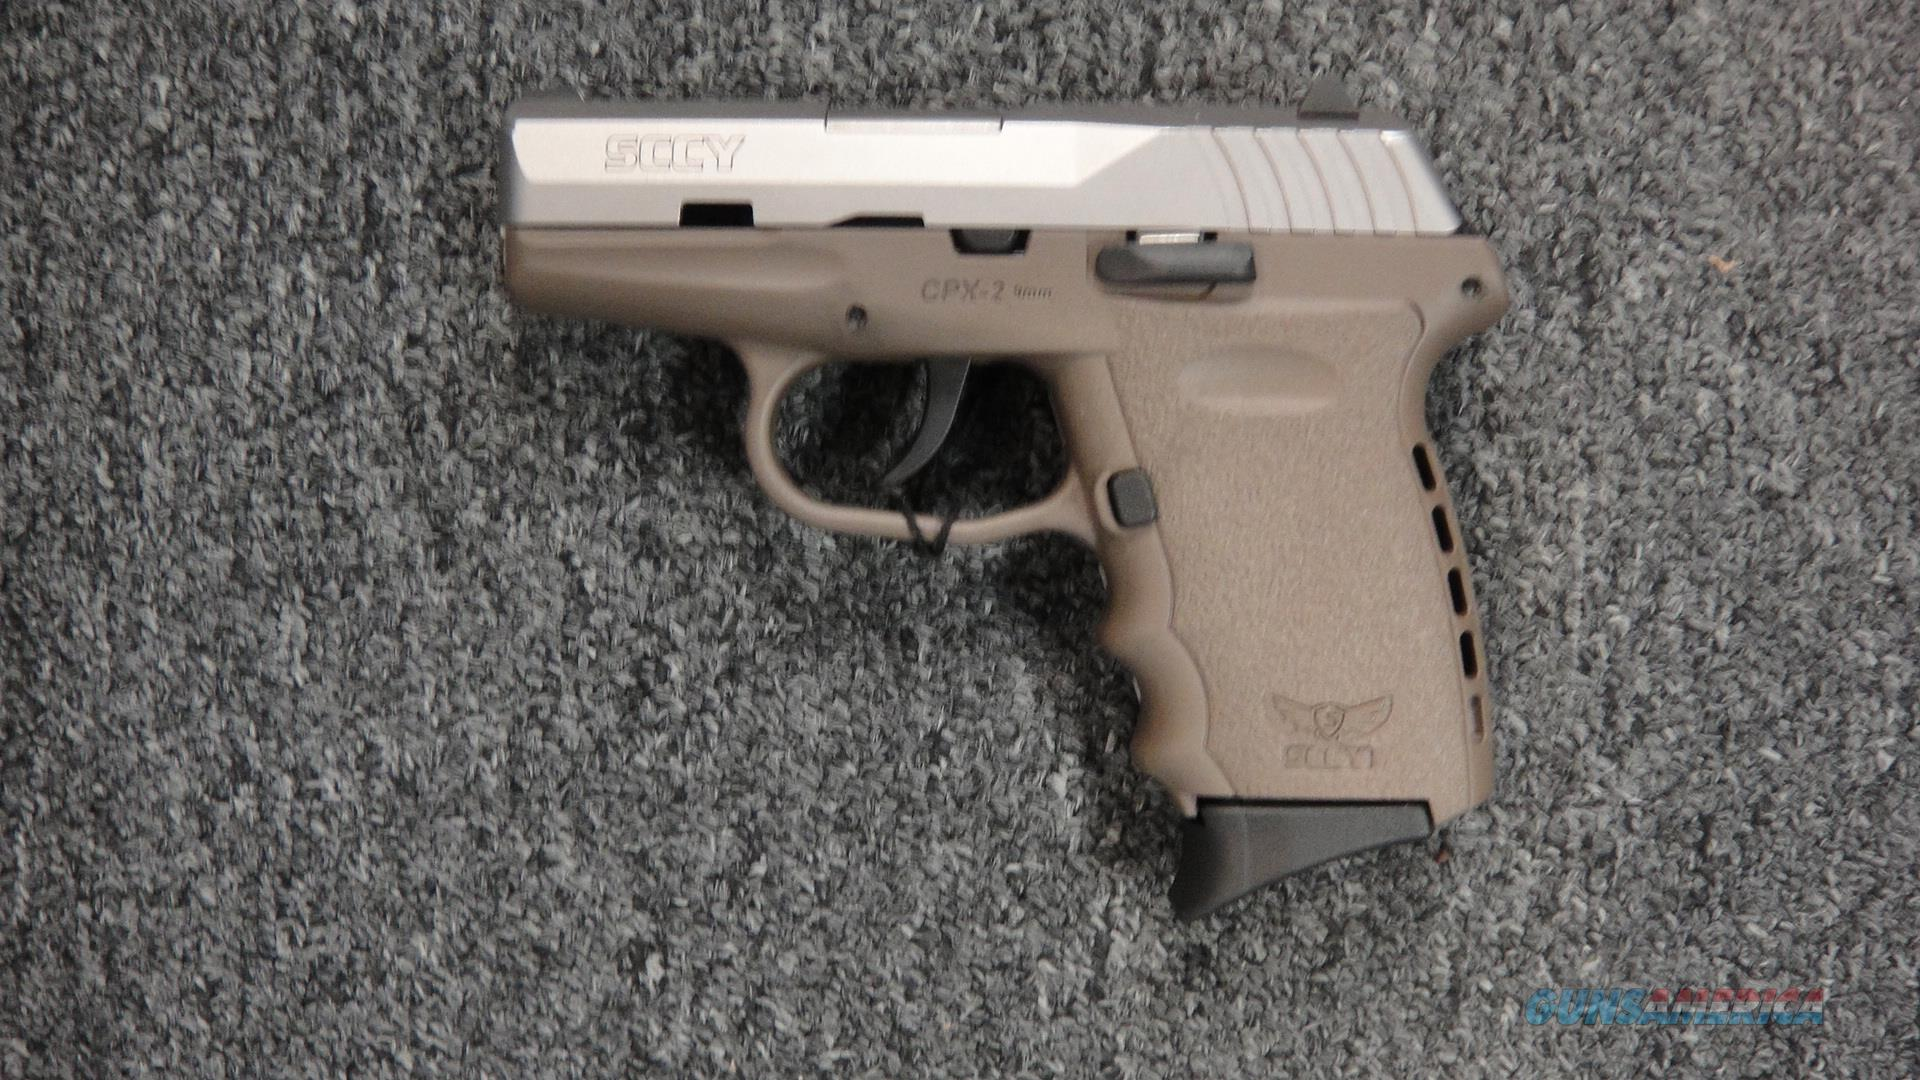 SCCY CPX2 Stainless/FDE  Guns > Pistols > SCCY Pistols > CPX2